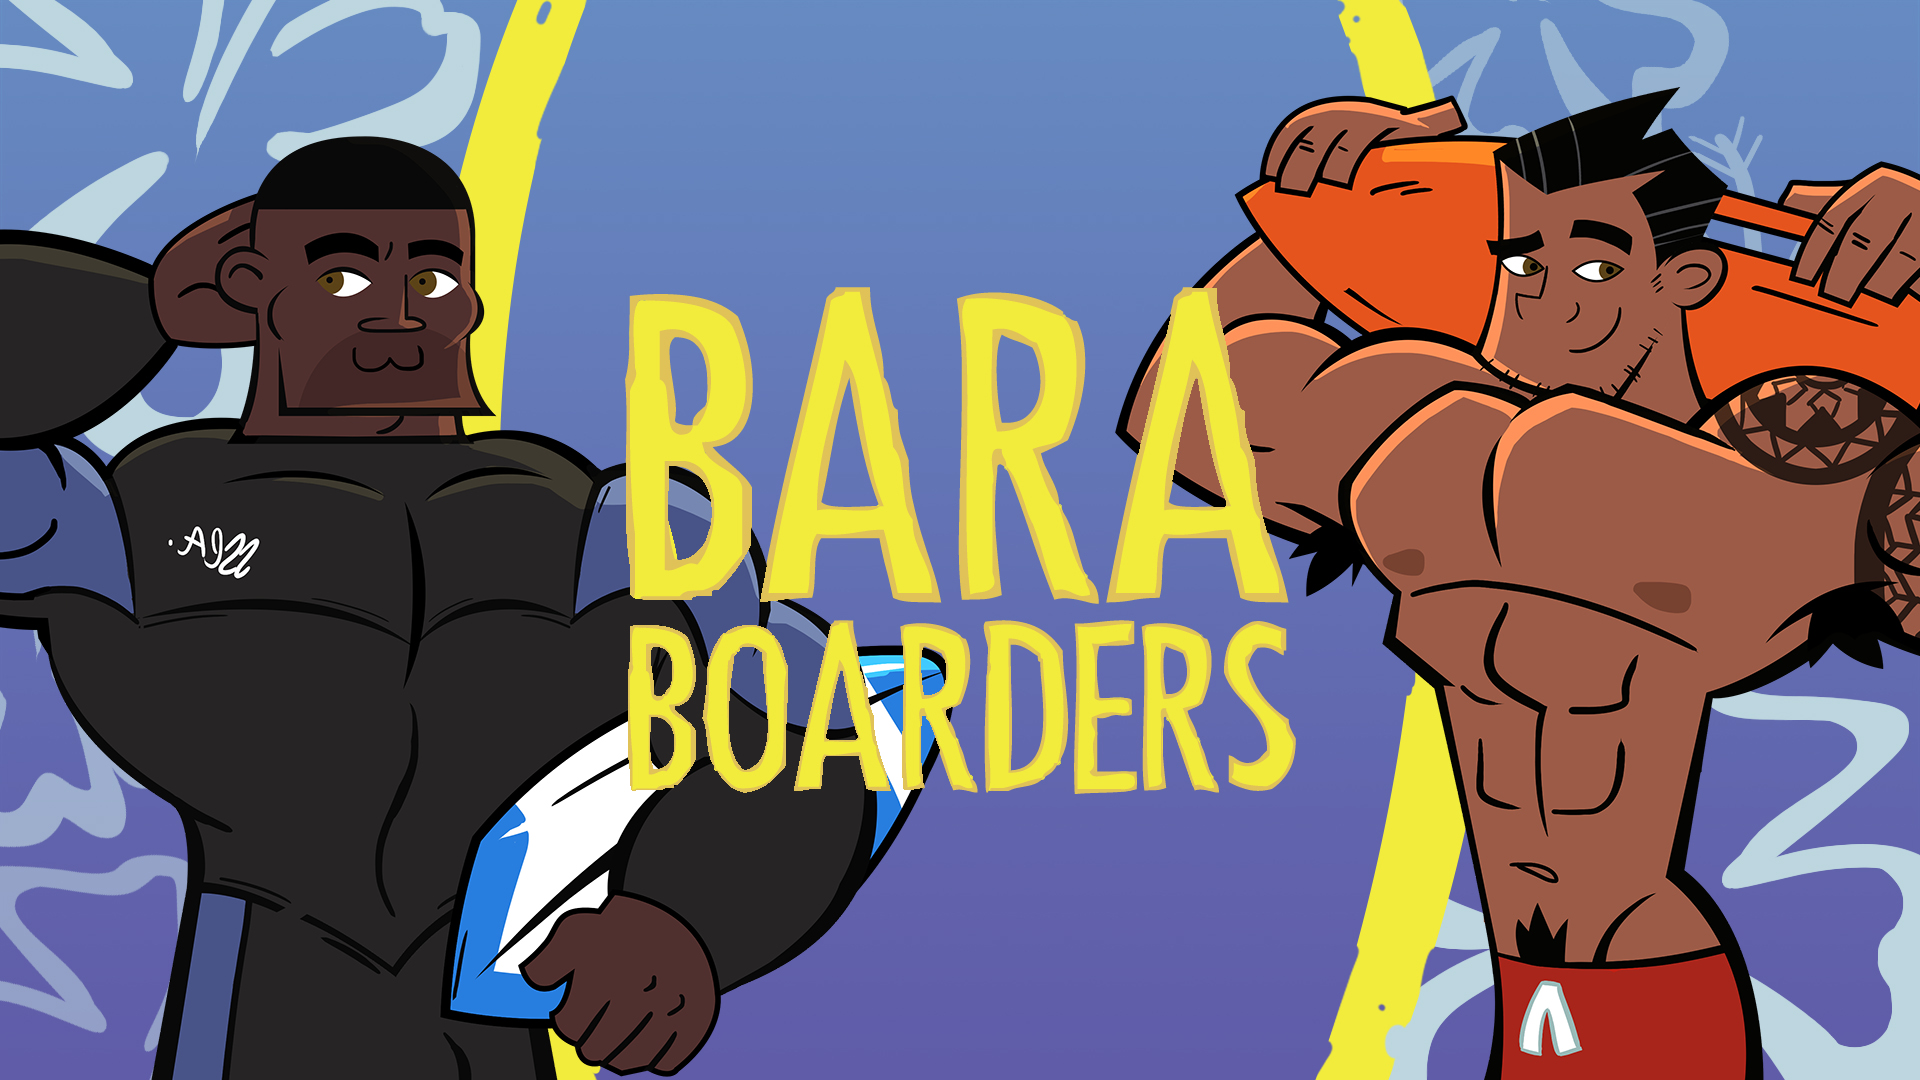 Date some Surfer Bros in Bara Boarders!